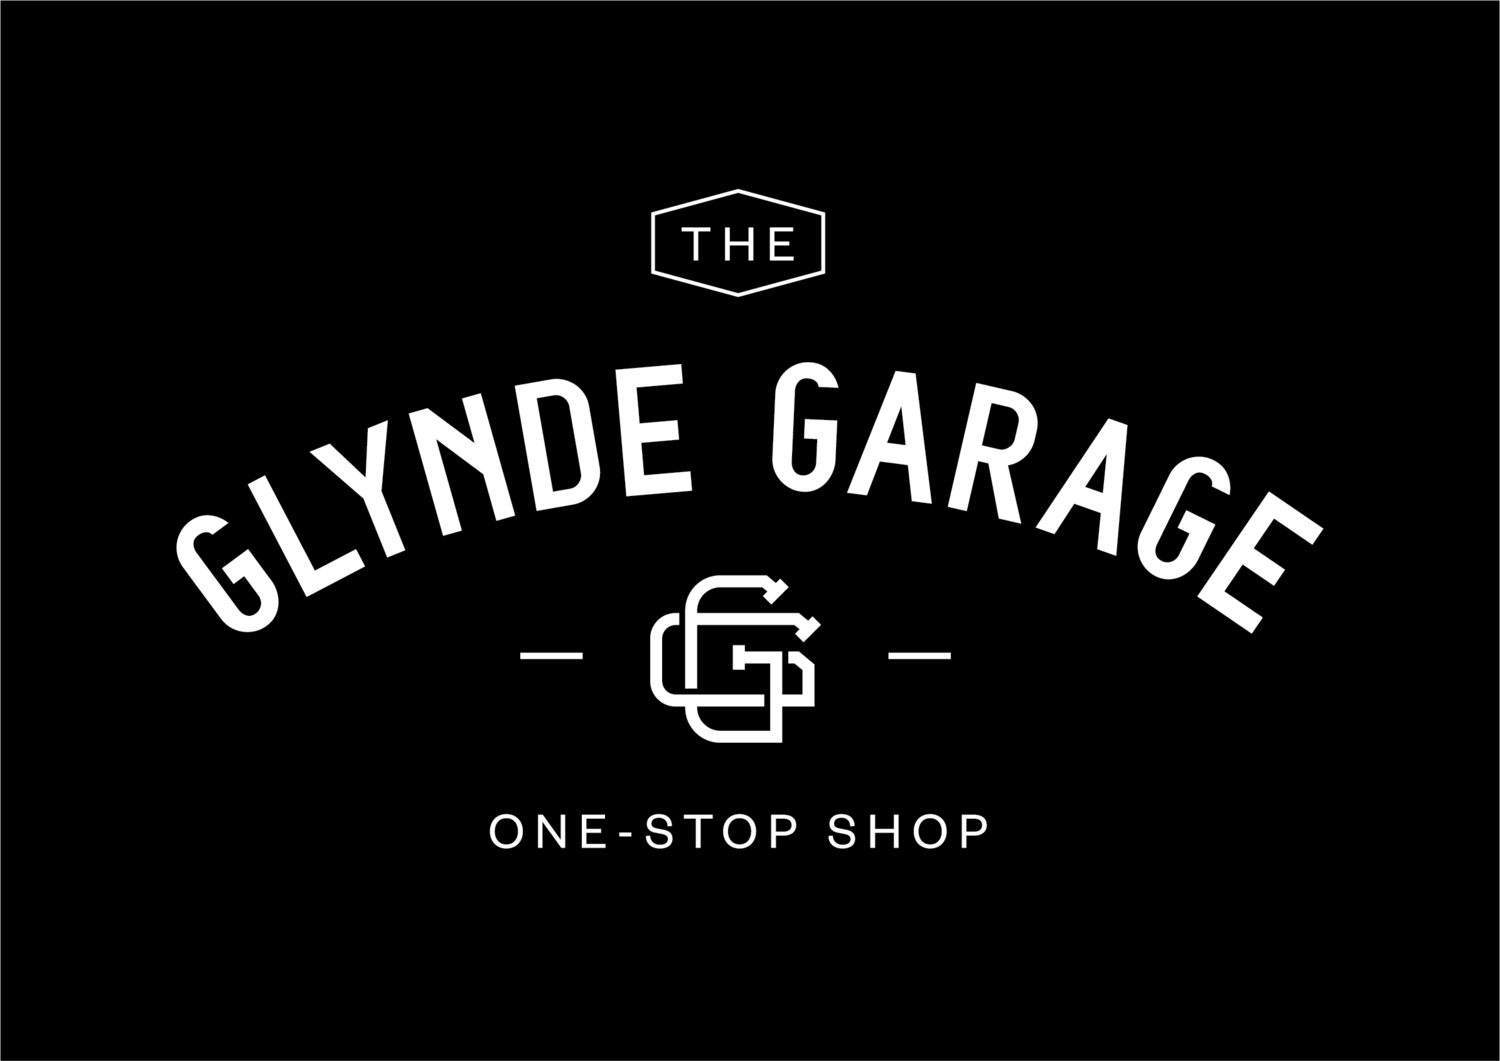 The Glynde Garage